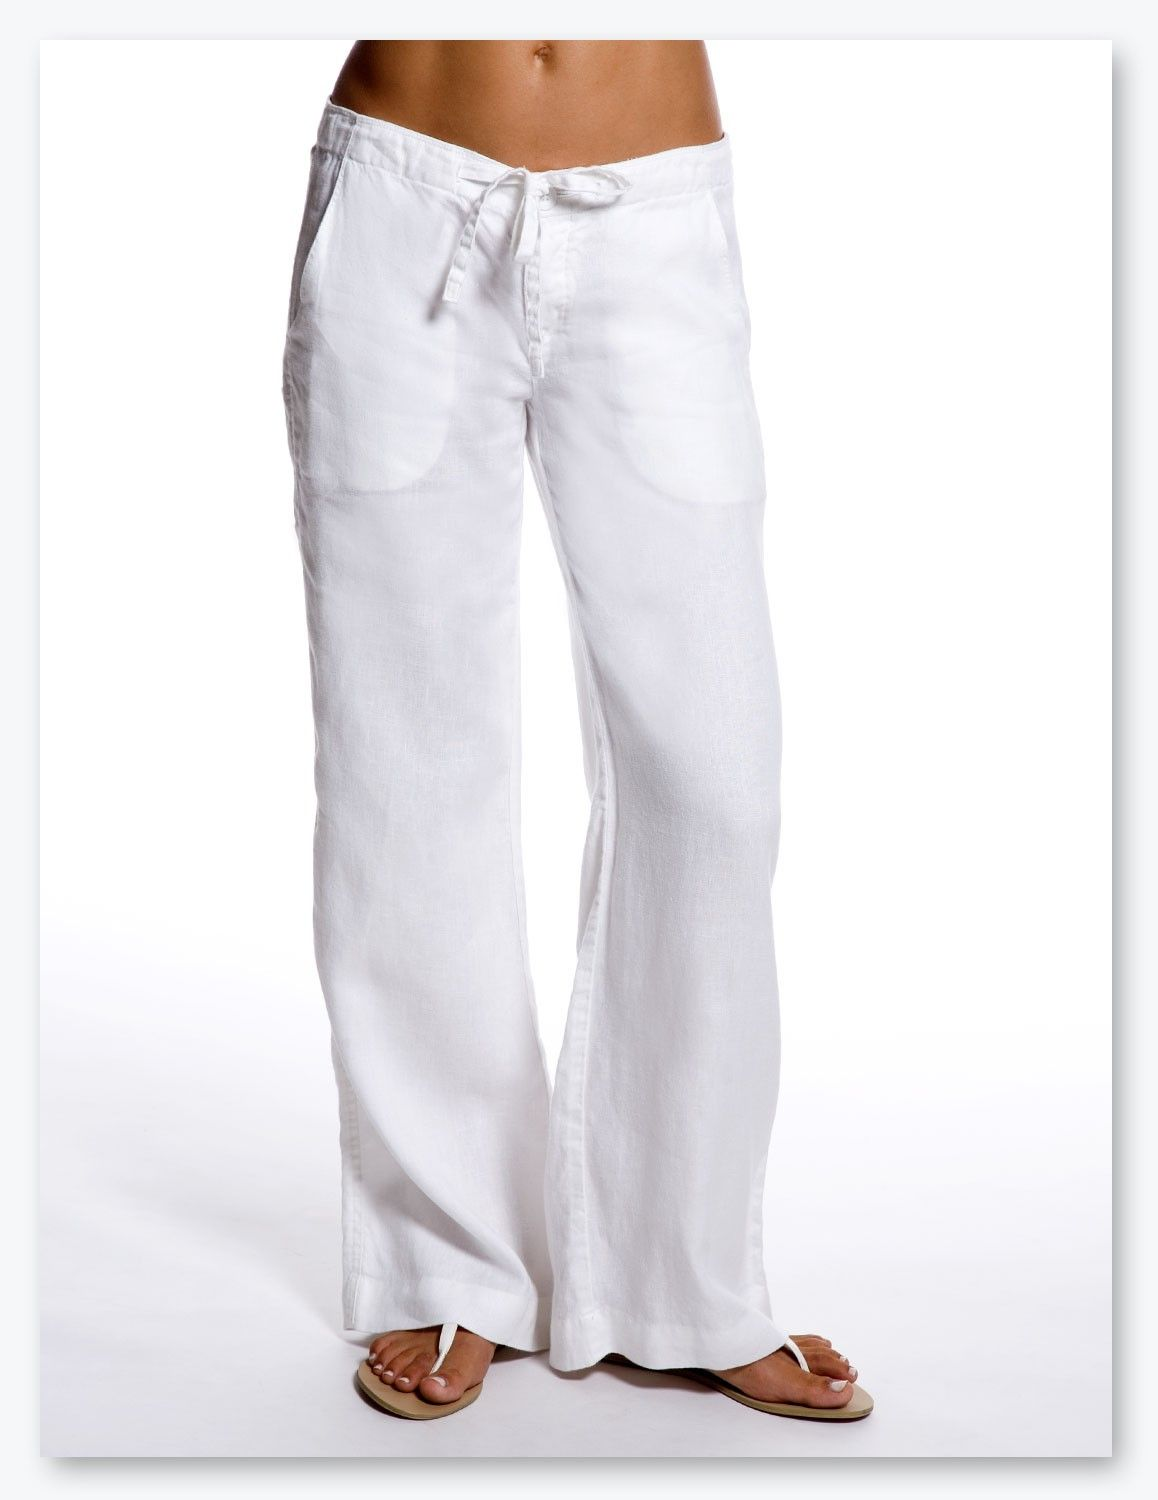 womens linen clothing | :: Women's Apparel :: Pants & Trousers ...